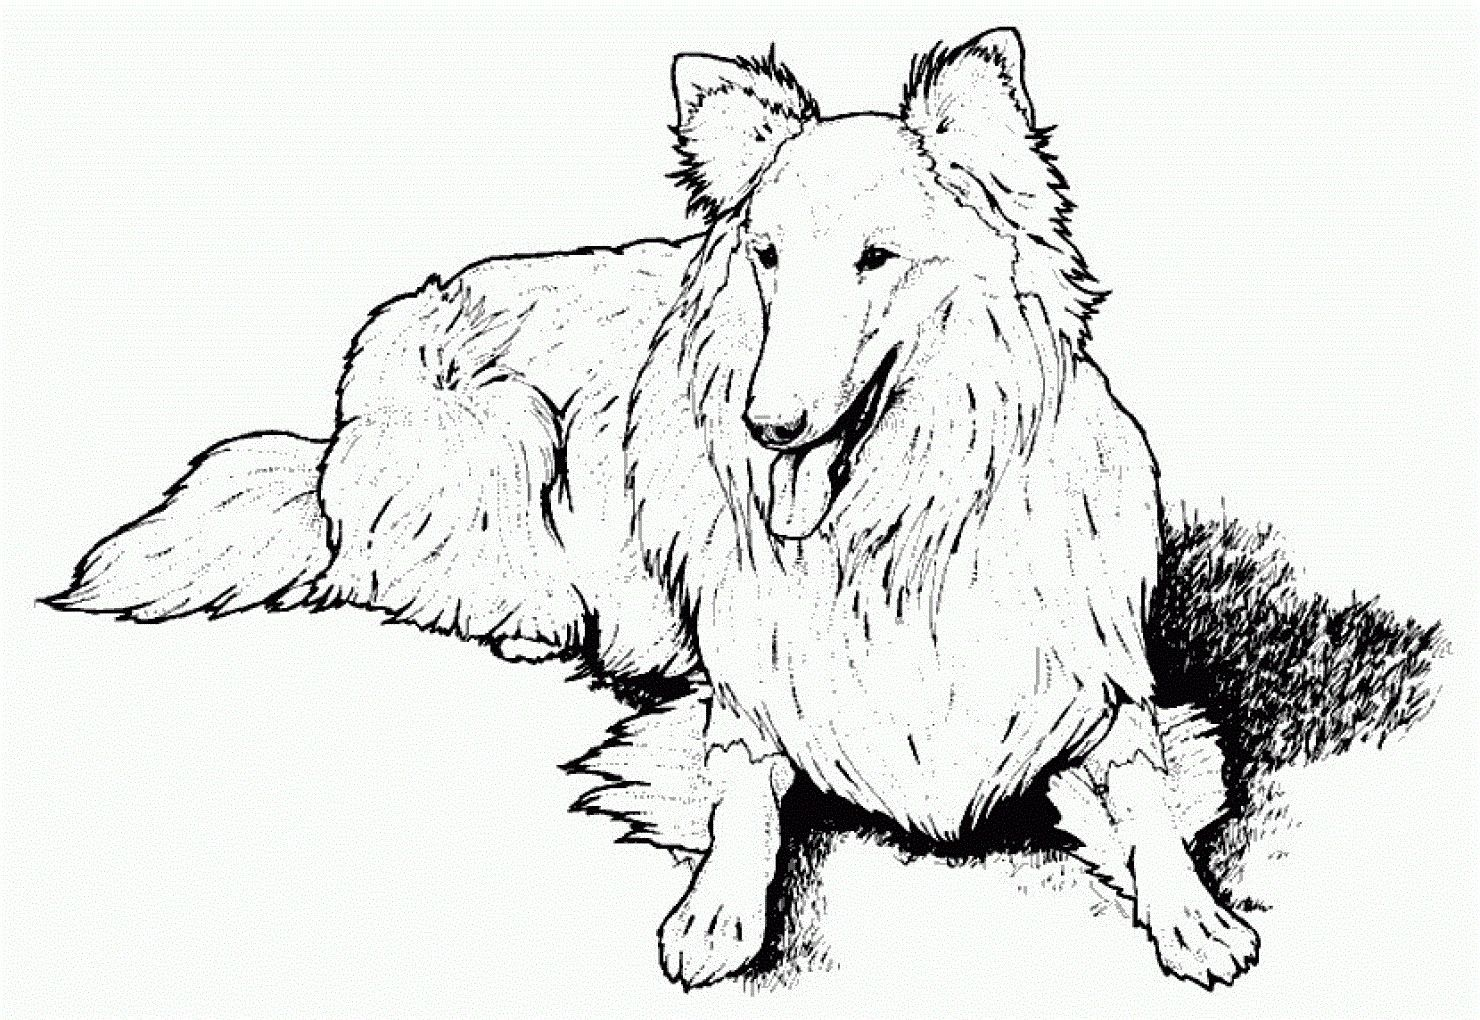 Realistic Dog Coloring Pages Unique Coloring Free Coloring Pages For Adults Landscape Ideas Dog Coloring Page Puppy Coloring Pages Dog Coloring Book [ 1020 x 1480 Pixel ]